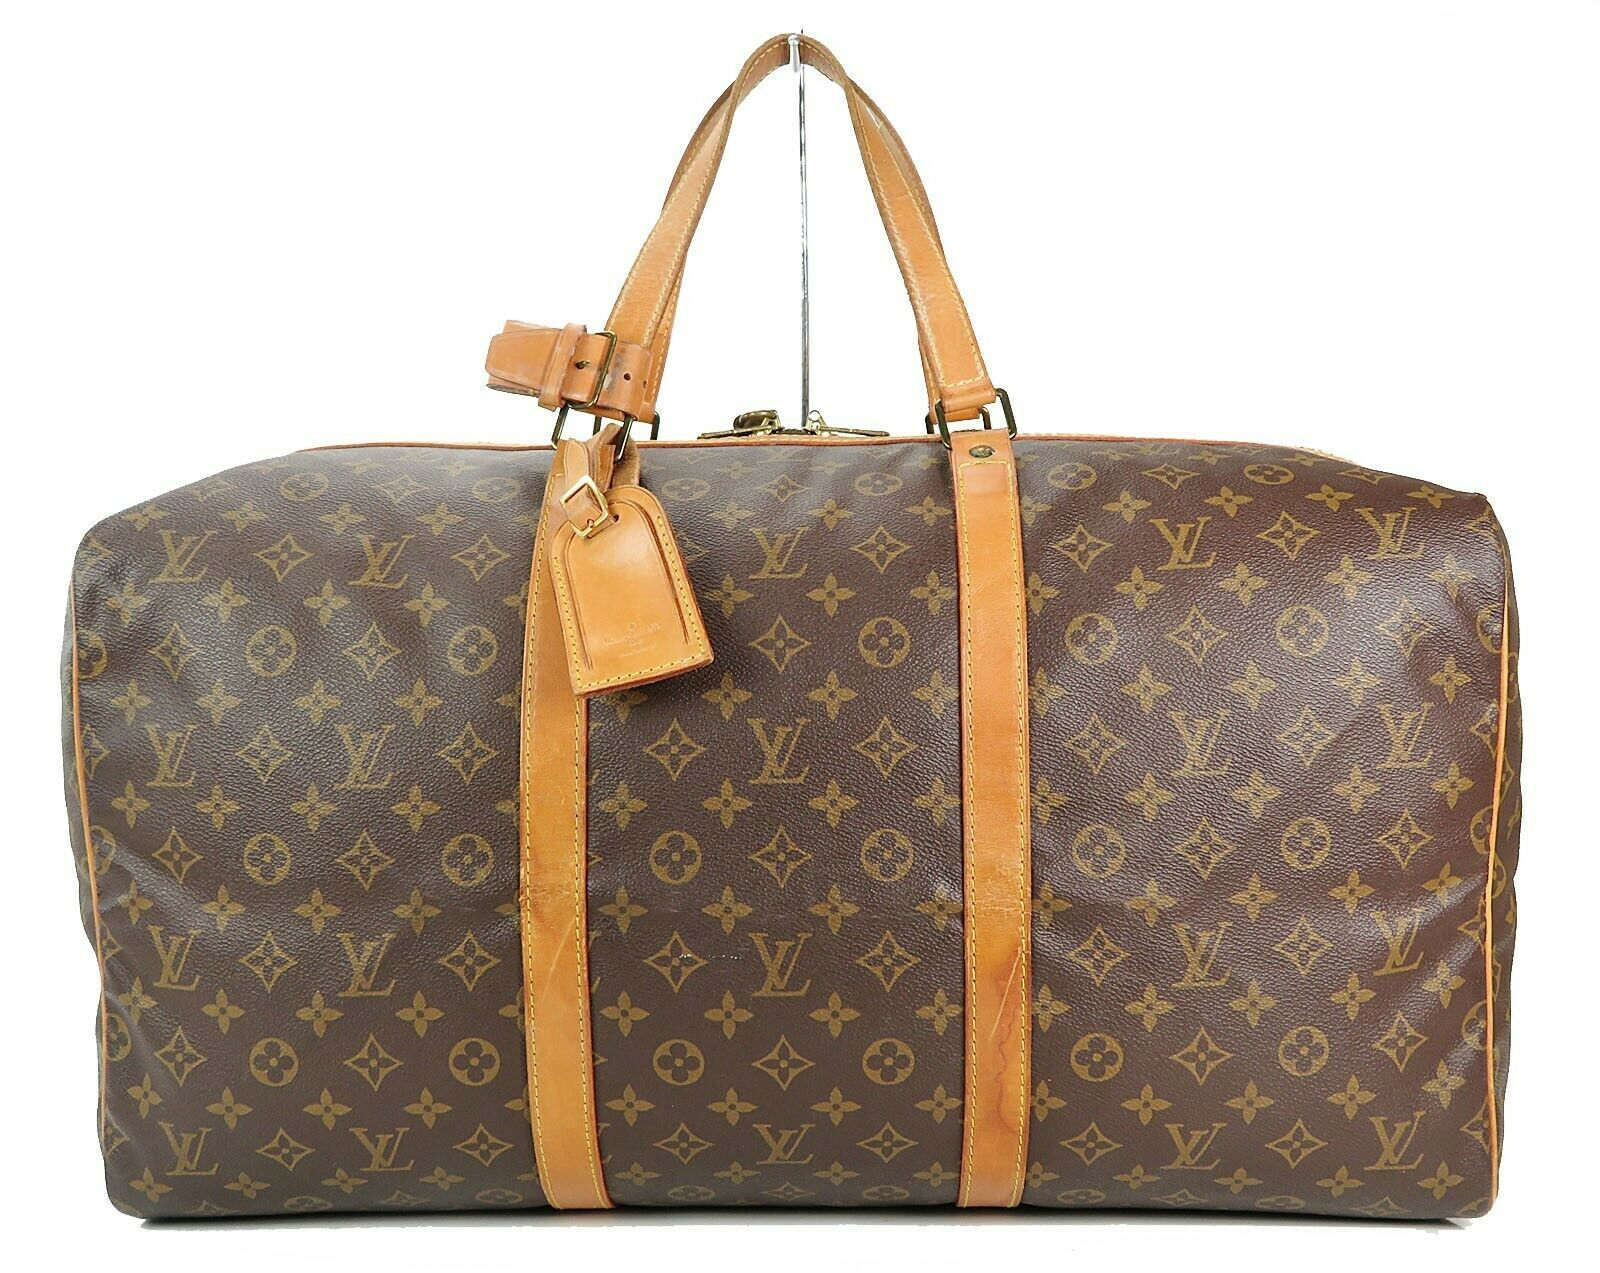 Authentic LOUIS VUITTON Sac Souple 55 Monogram Tote Duffle Bag #34978